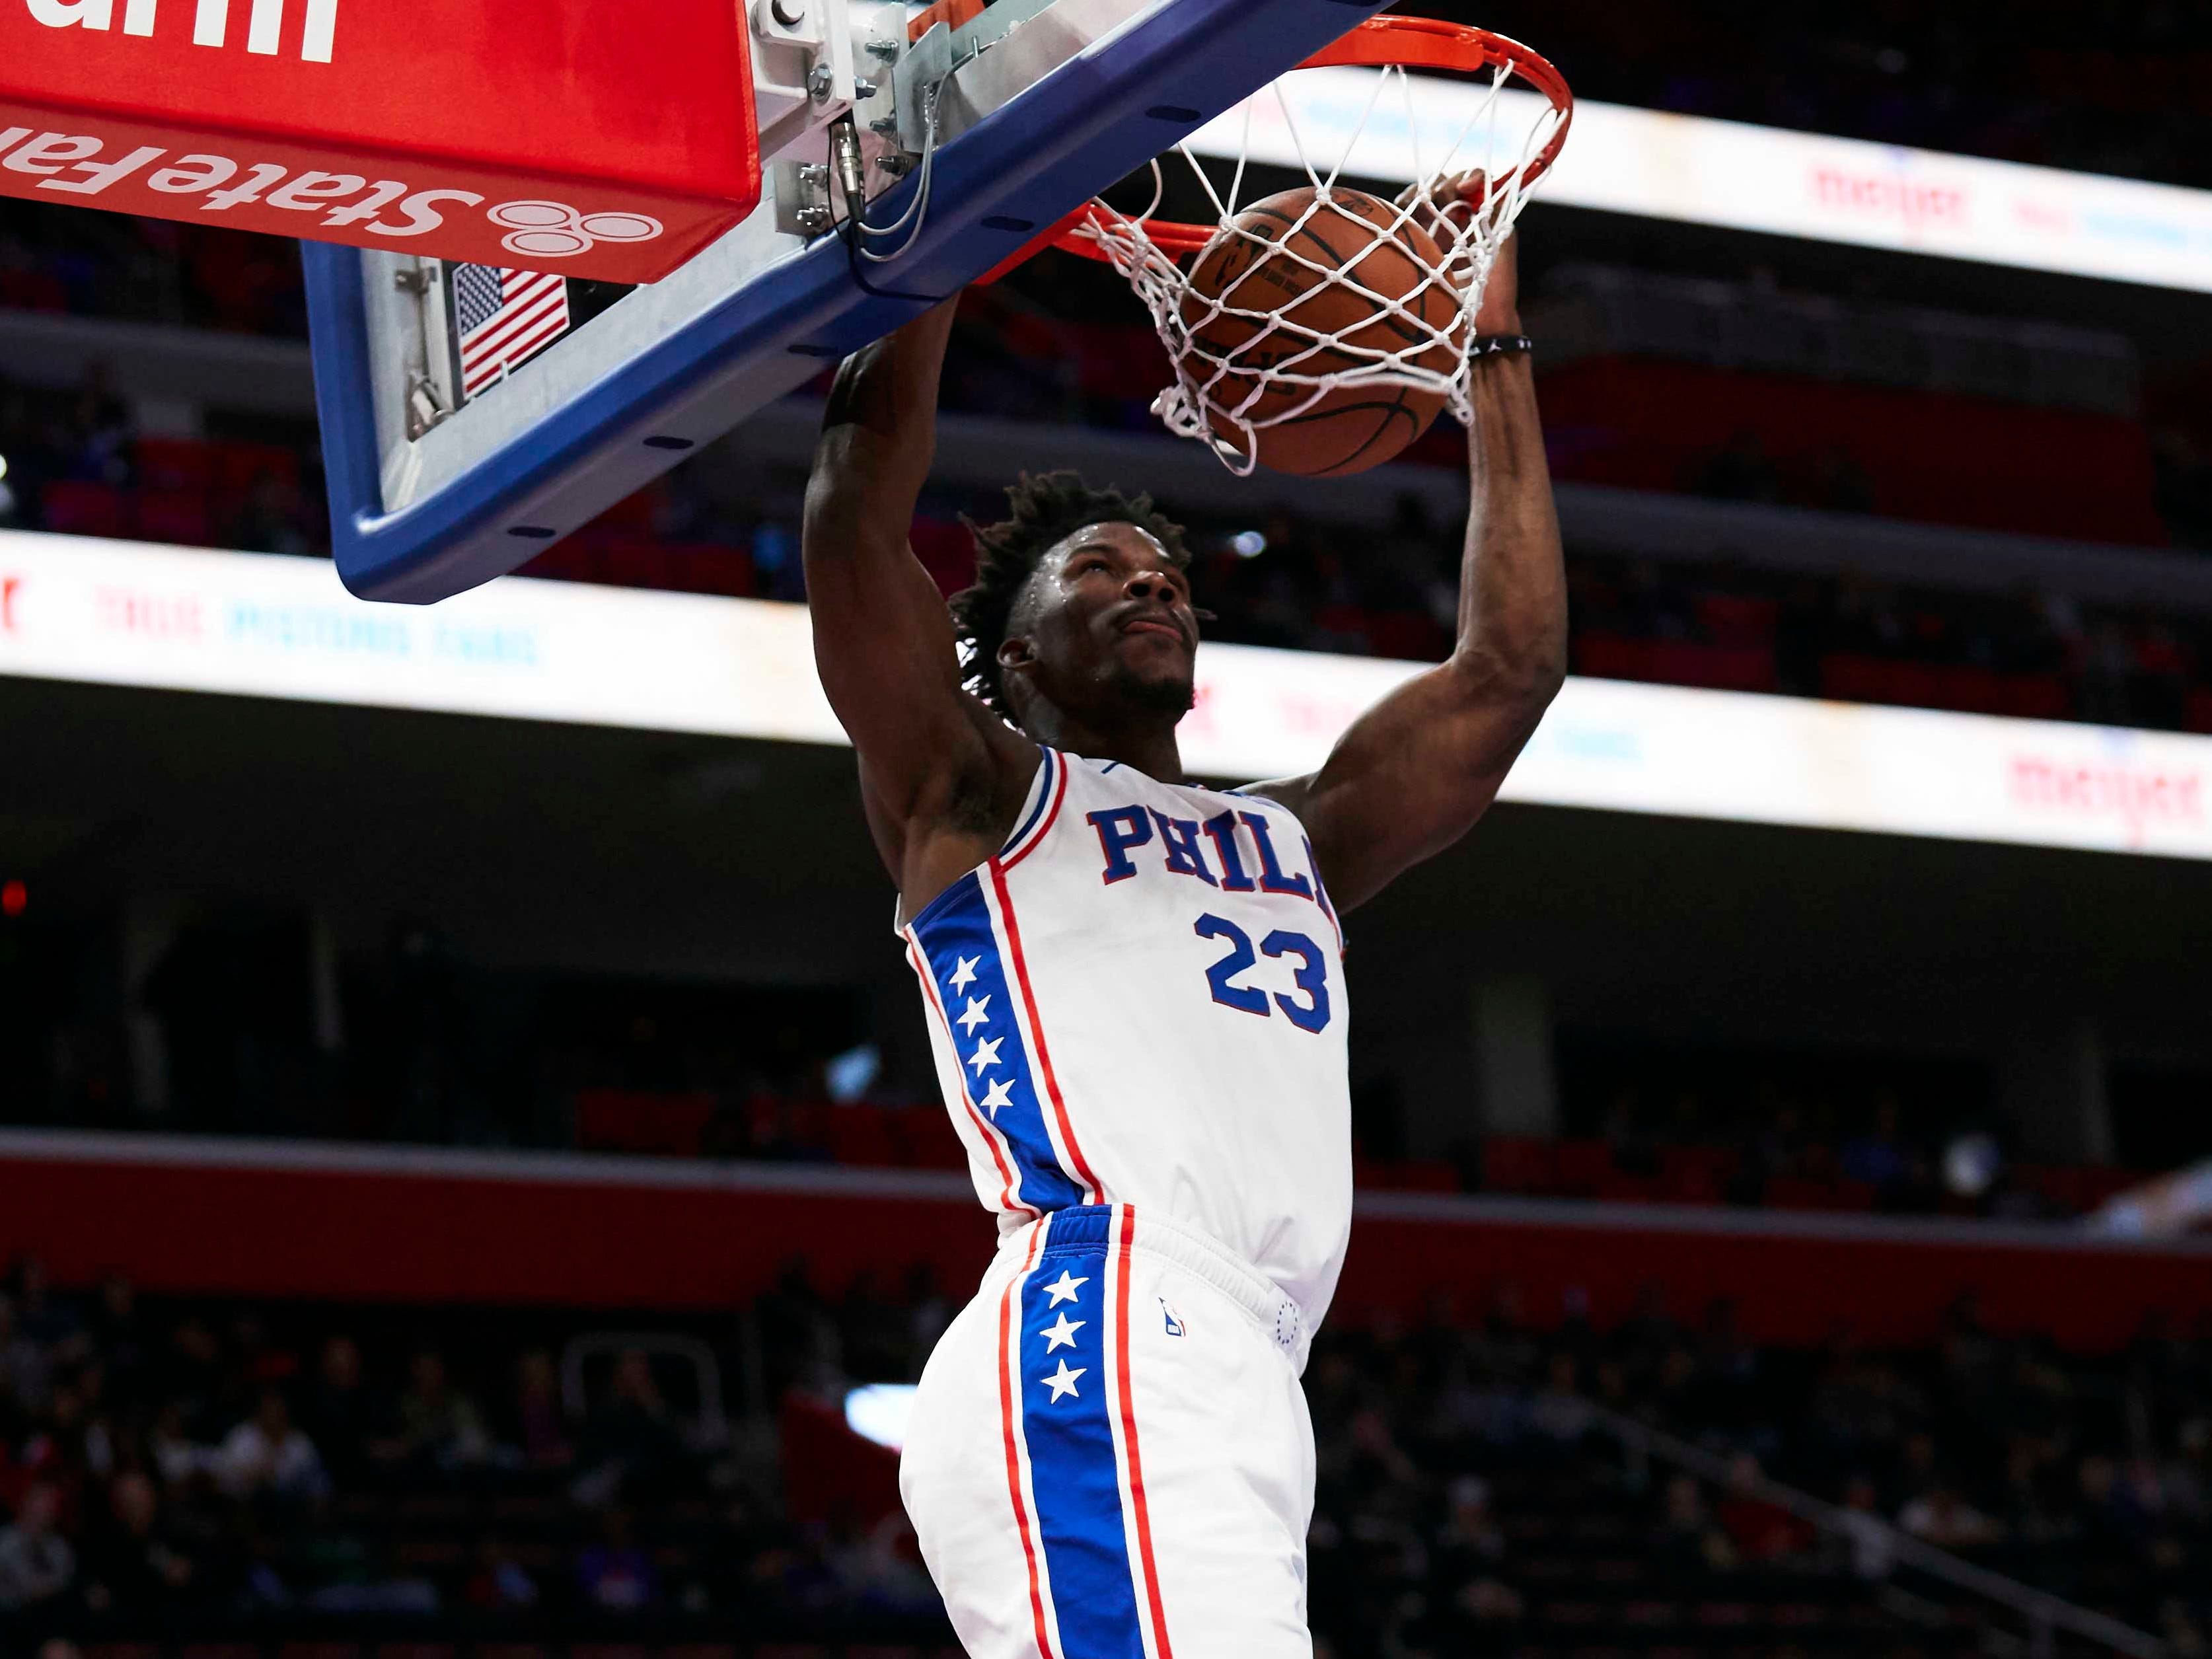 Dec. 7: 76ers guard Jimmy Butler throws down the two-handed finish during the first half against the Pistons in Detroit.